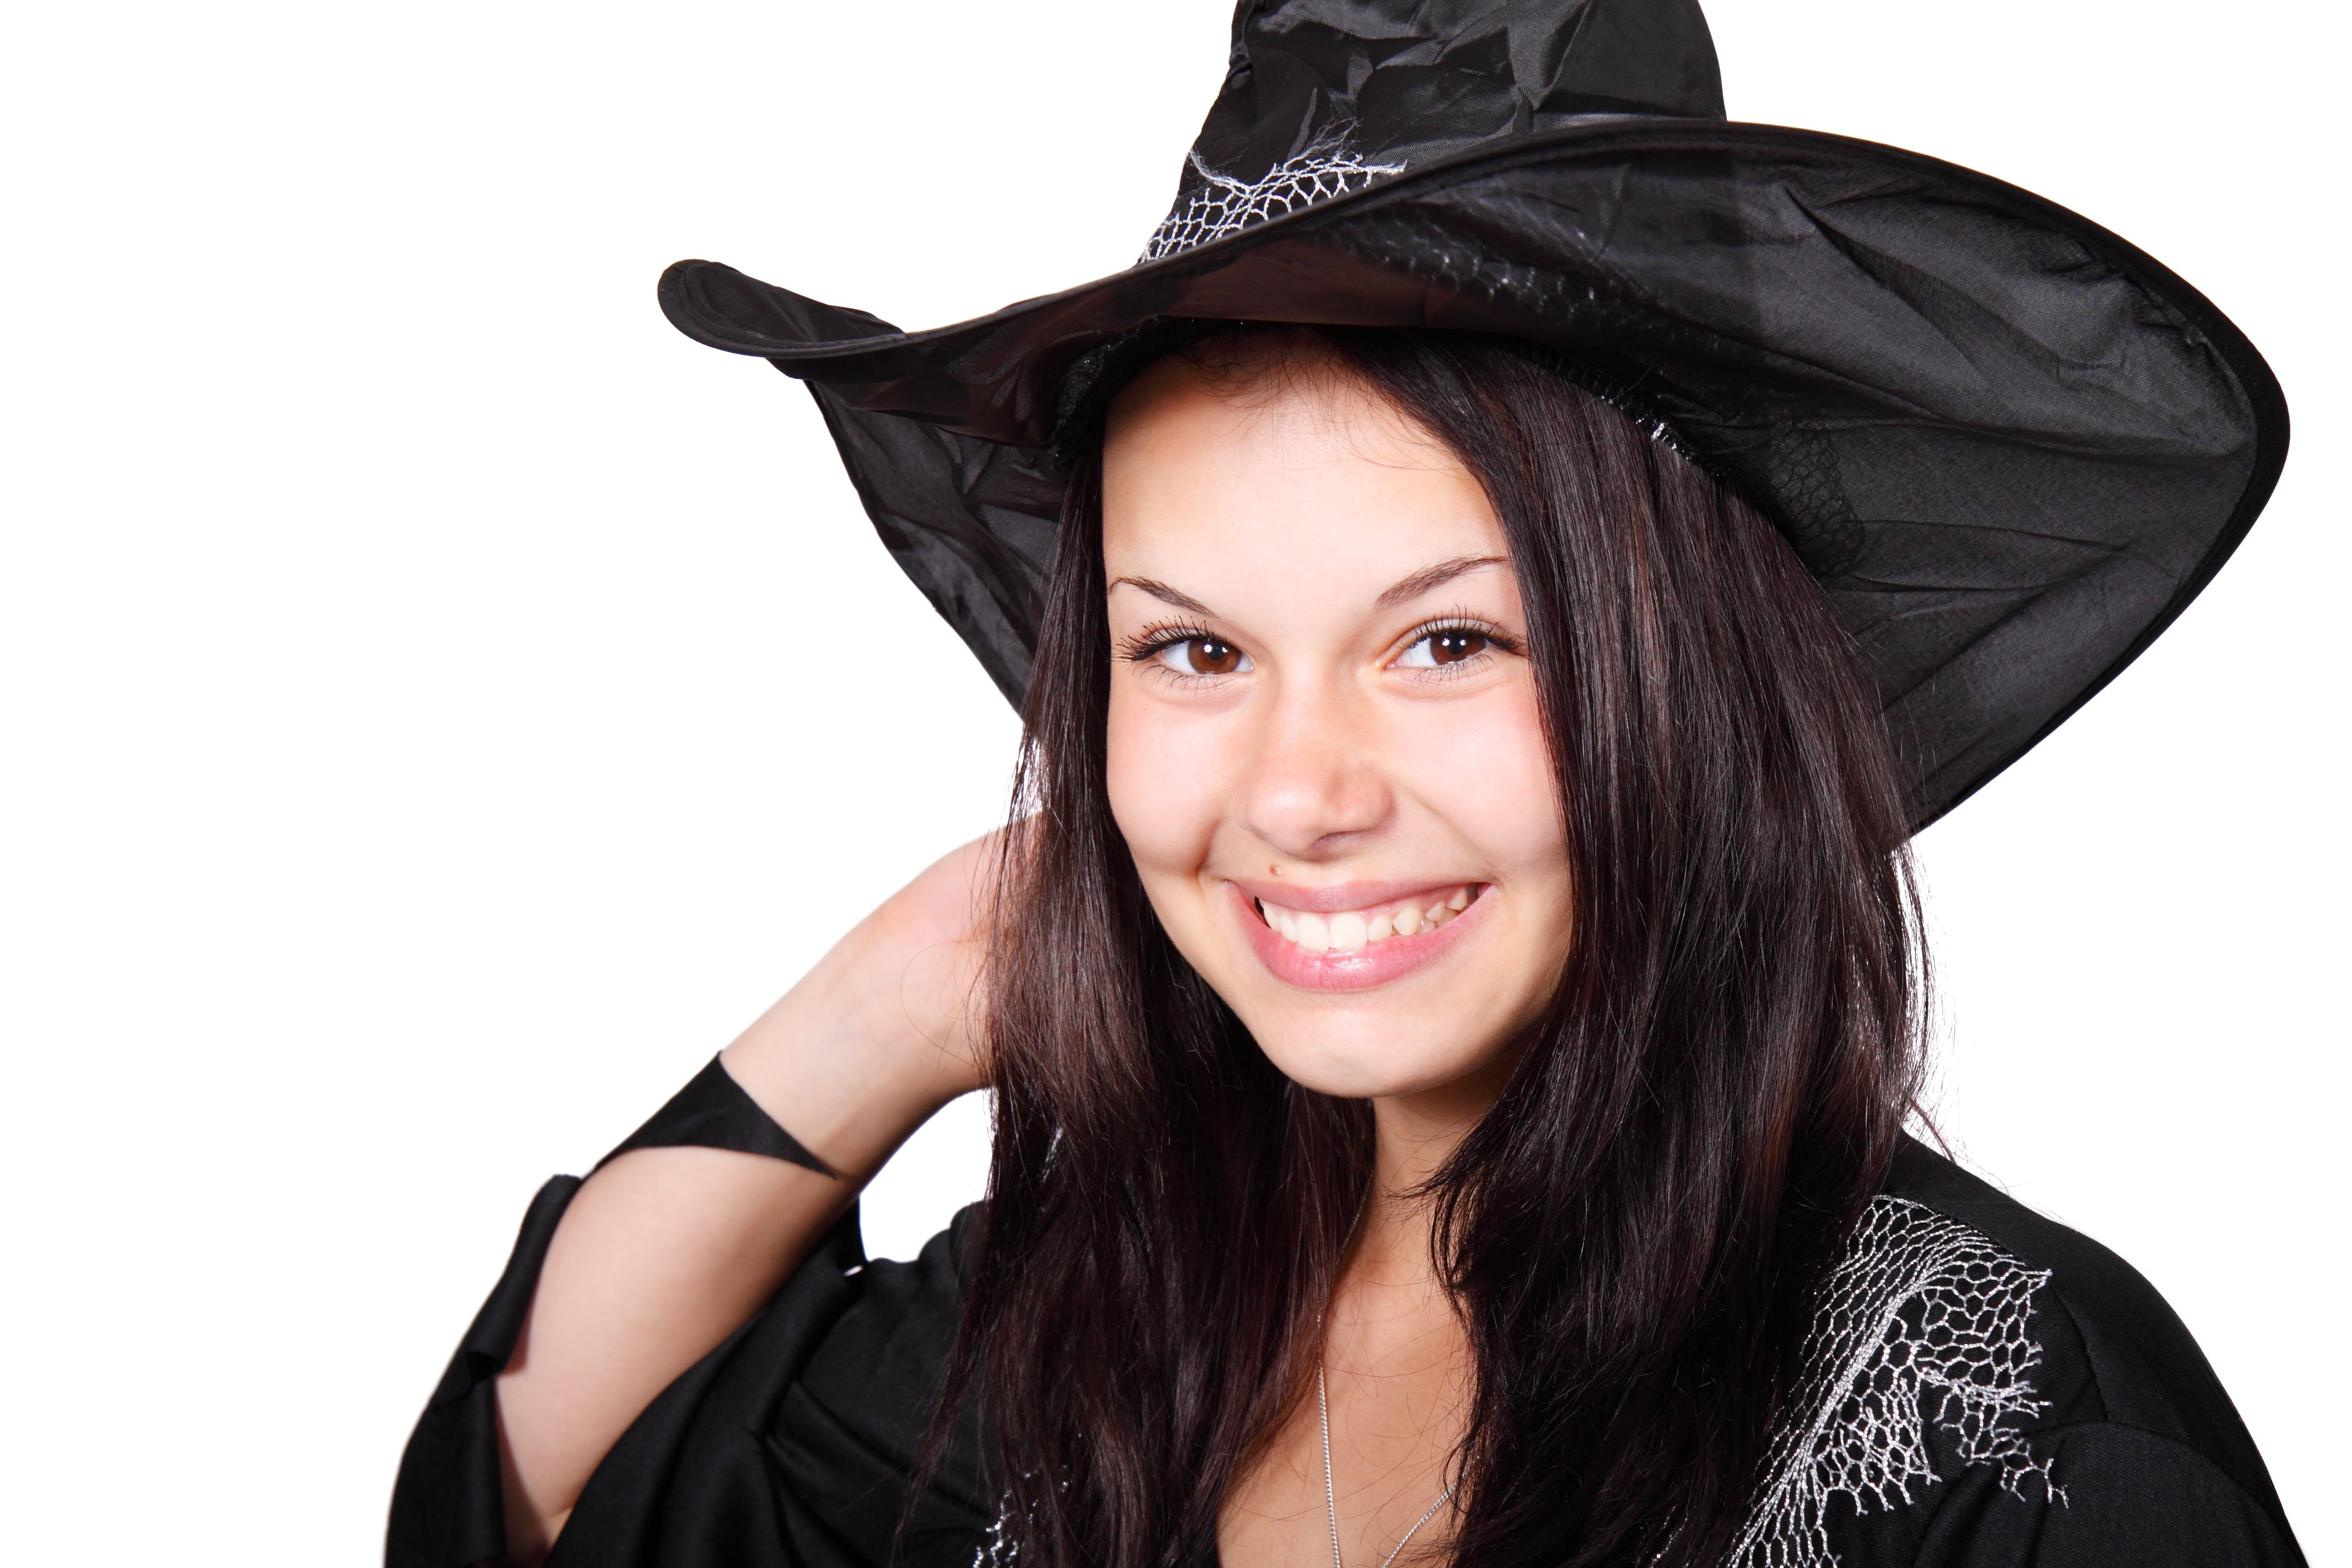 Smiling Woman Wearing With Hat